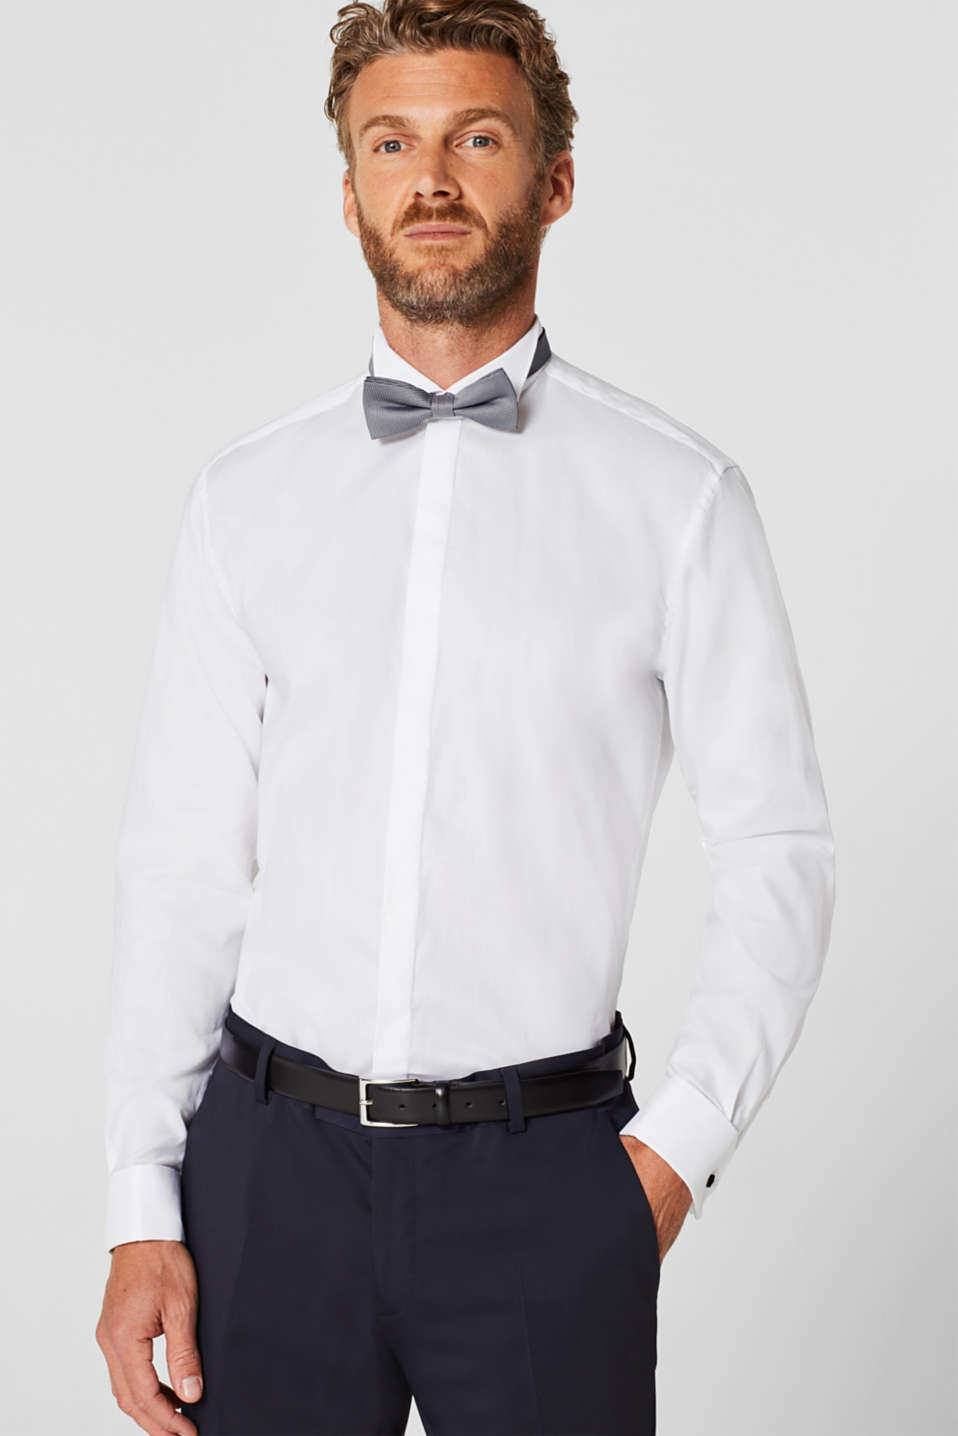 Esprit - Dinner jacket made of 100% cotton